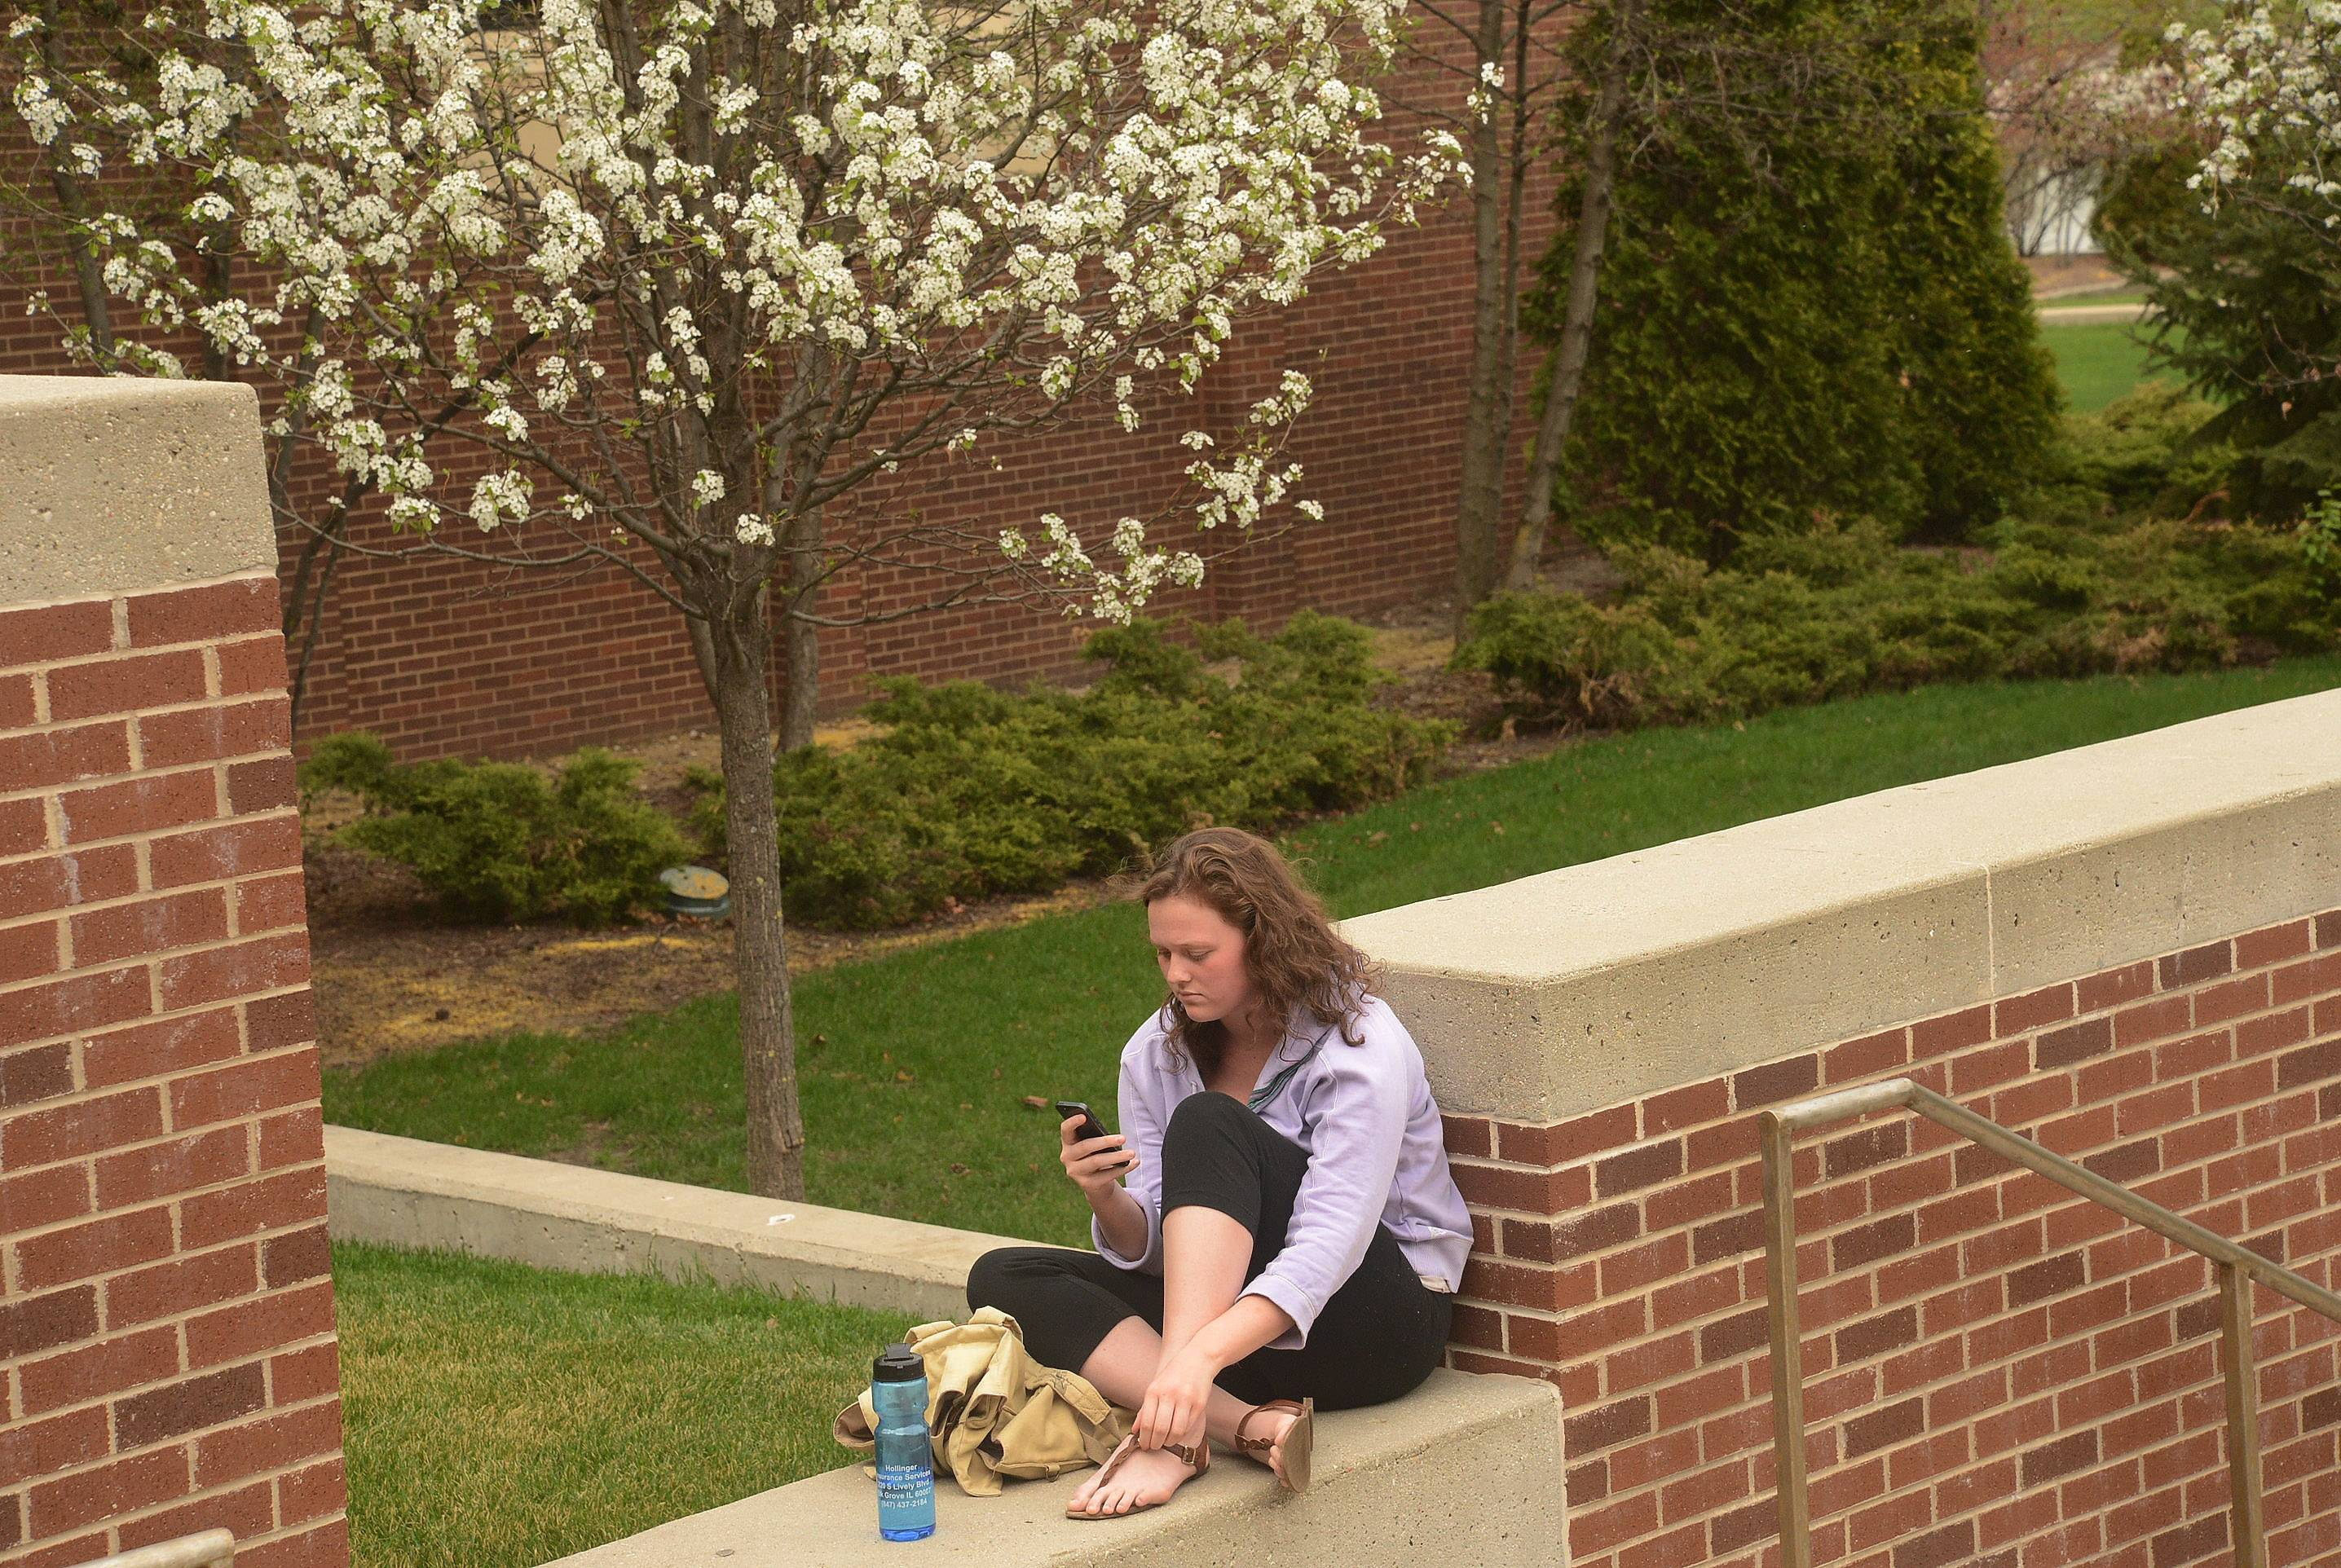 Bridget Barry of Barrington relaxes outdoors at Harper College in Palatine.